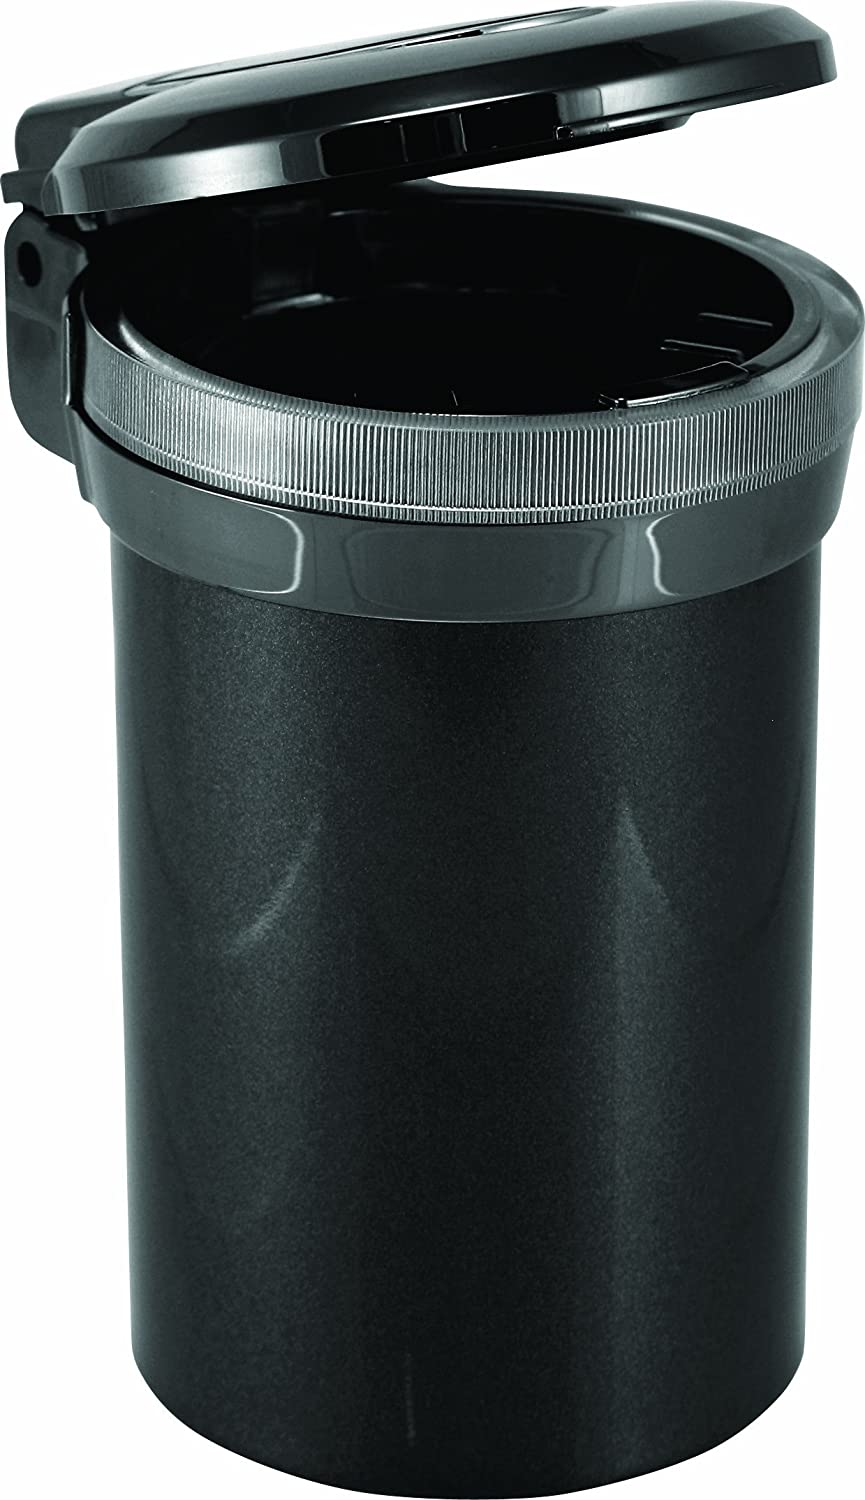 Bell Automotive 22-1-39263-8 Ash Tray with Solar Powered Lighting